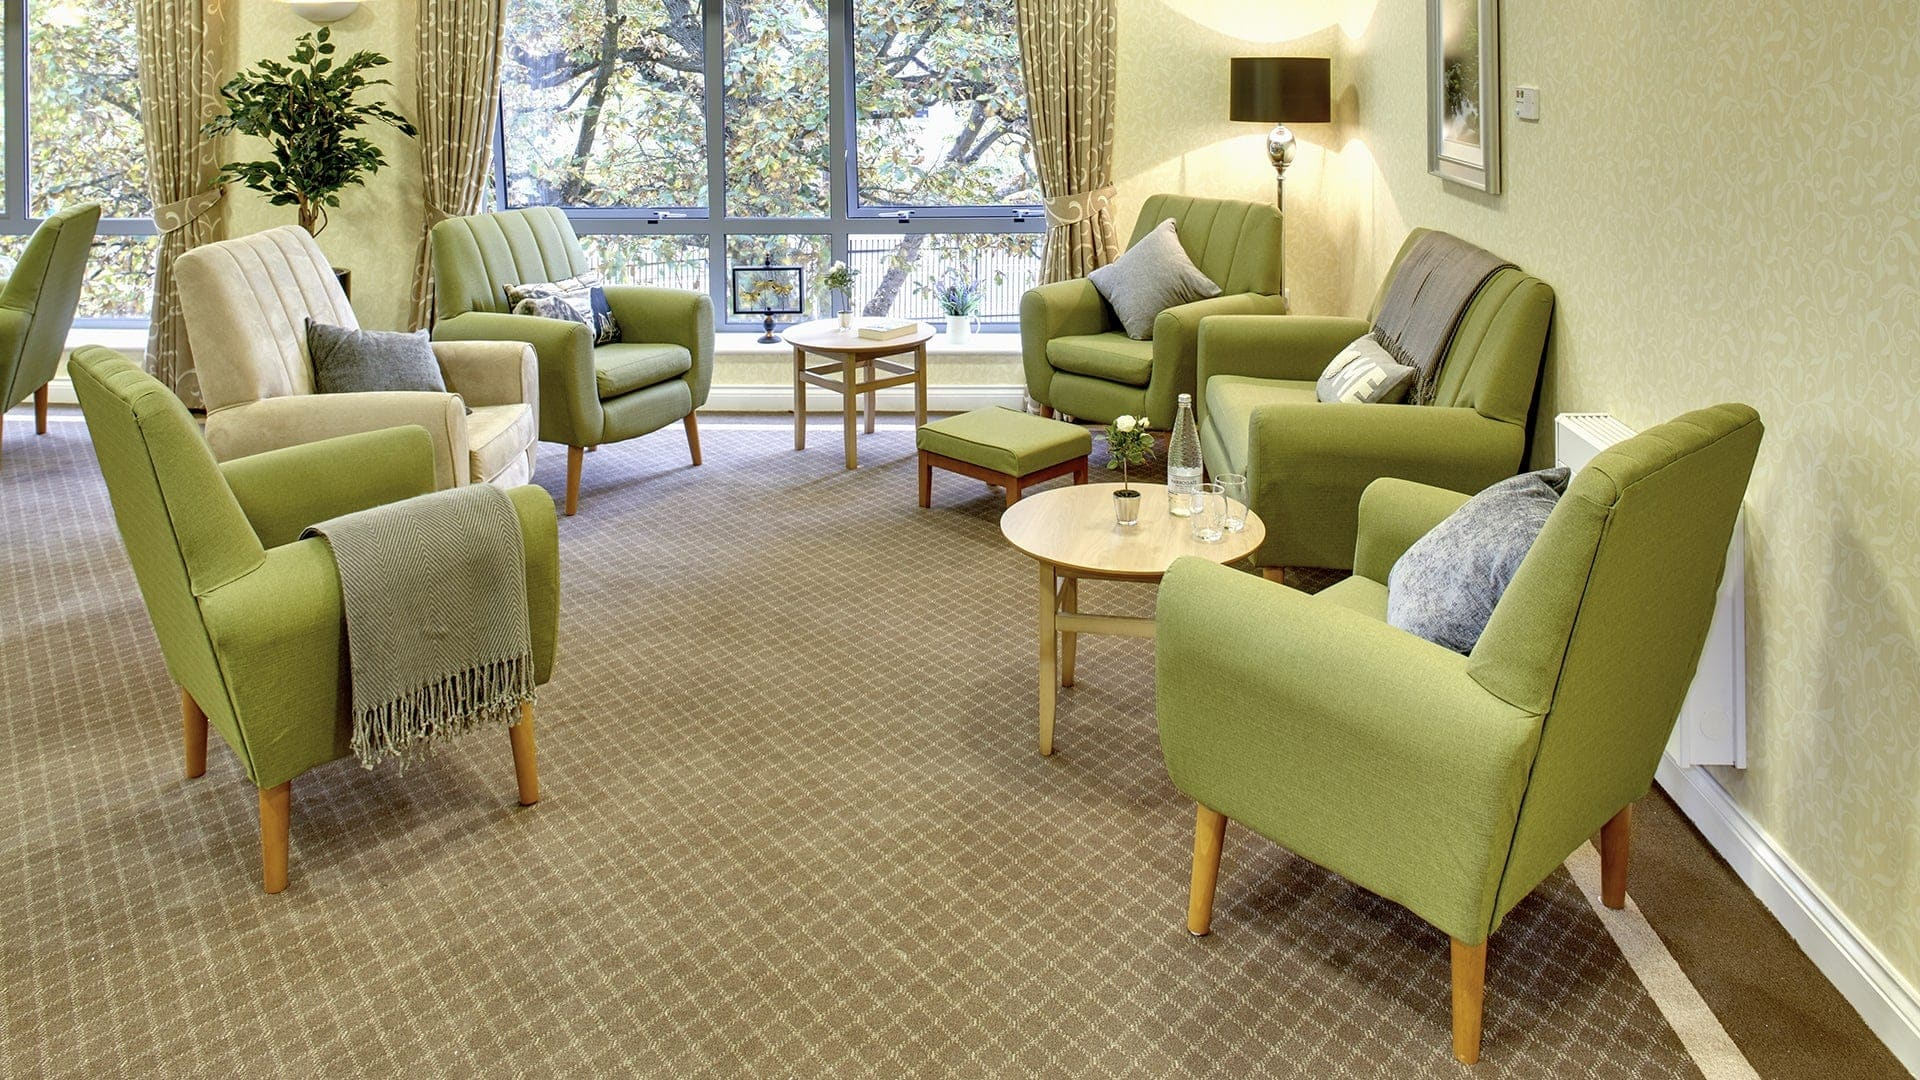 avalon court care home contract cushions and throw in living room